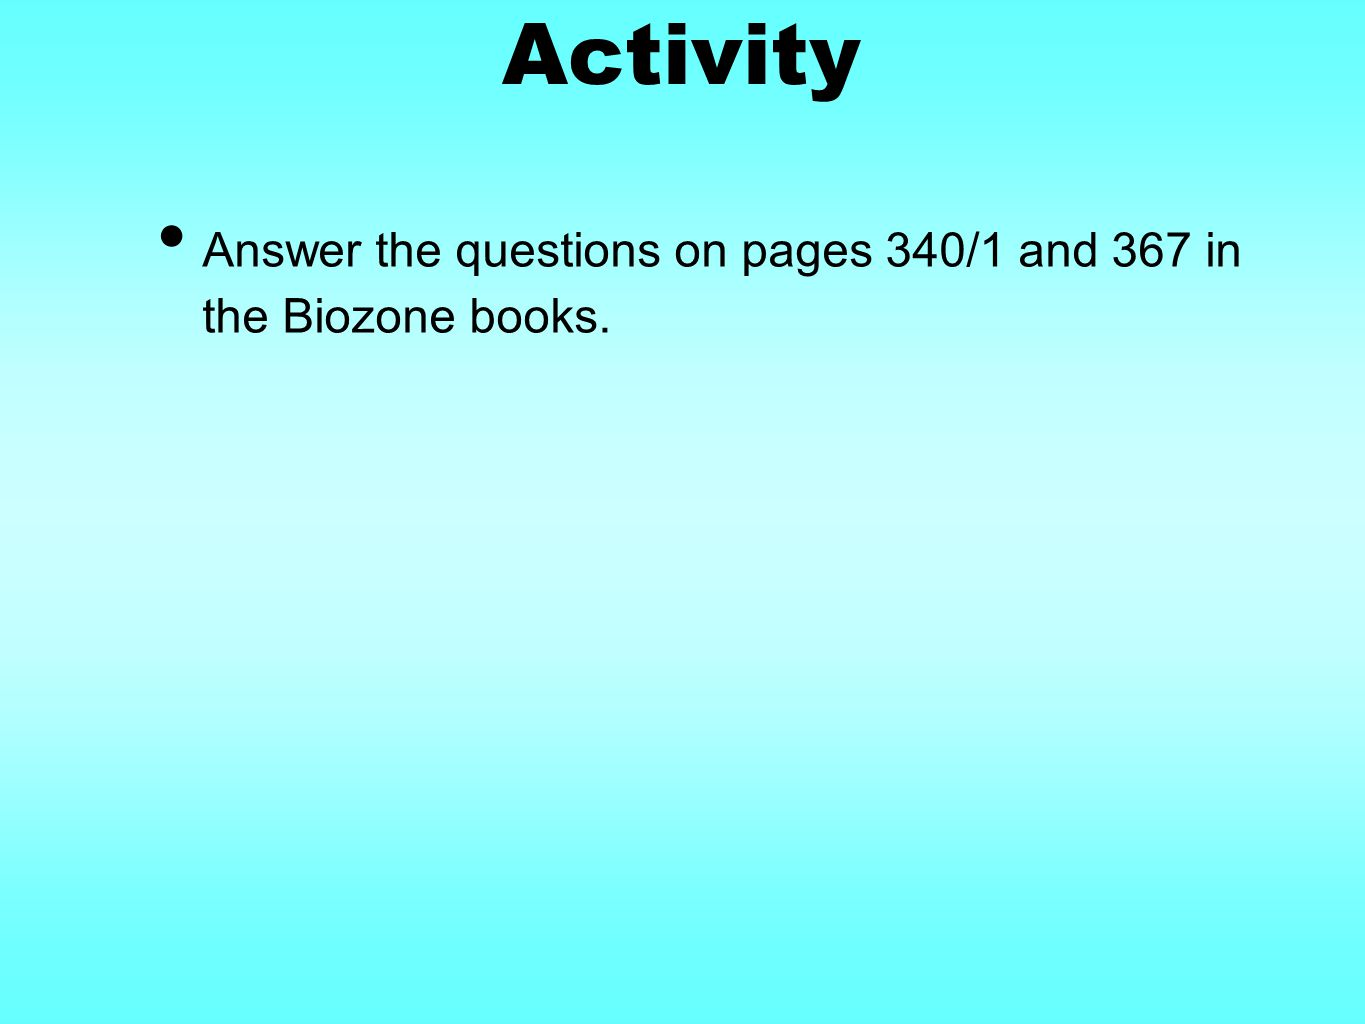 Activity Answer the questions on pages 340/1 and 367 in the Biozone books.